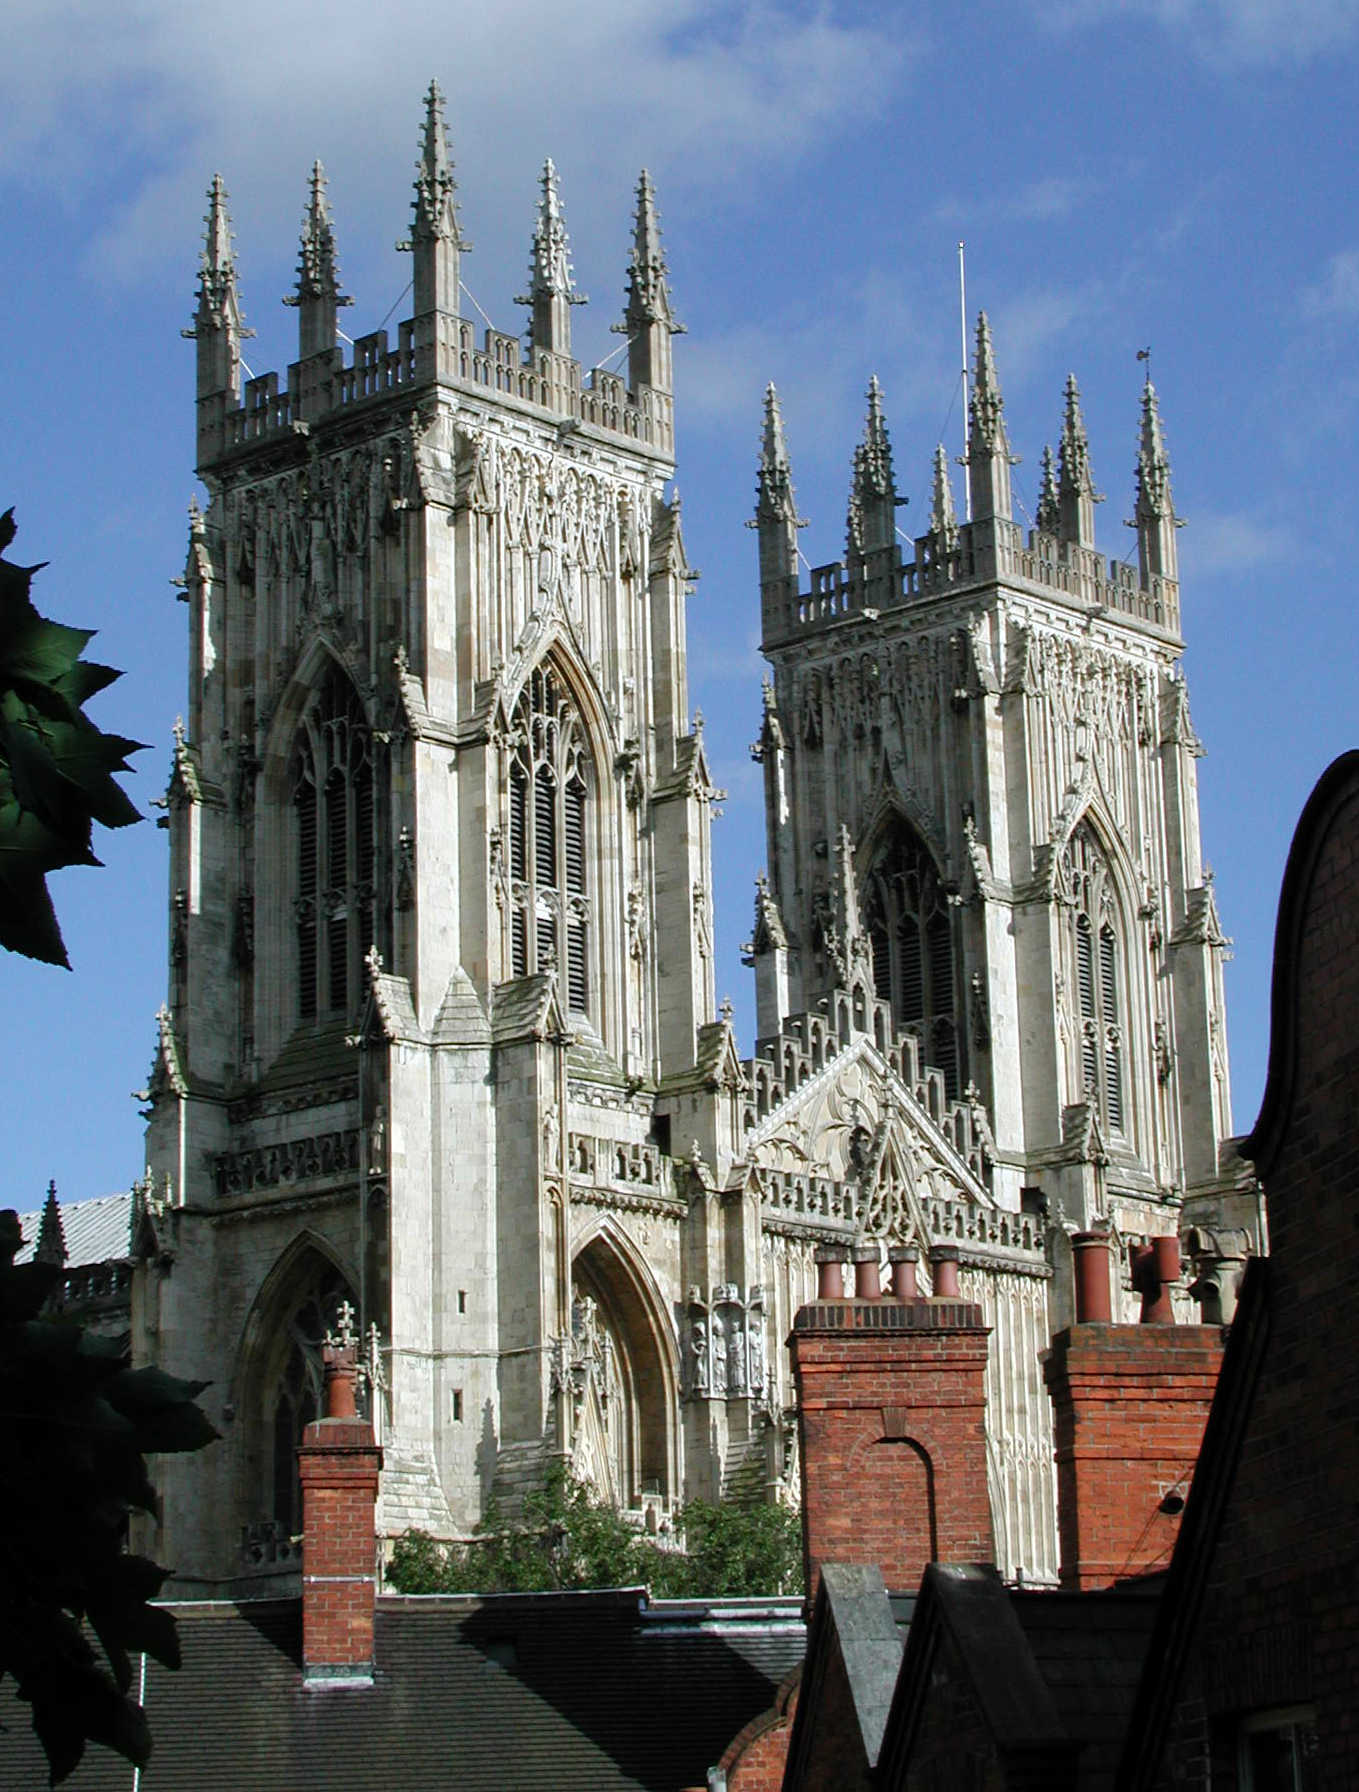 York Minster Church, York, England